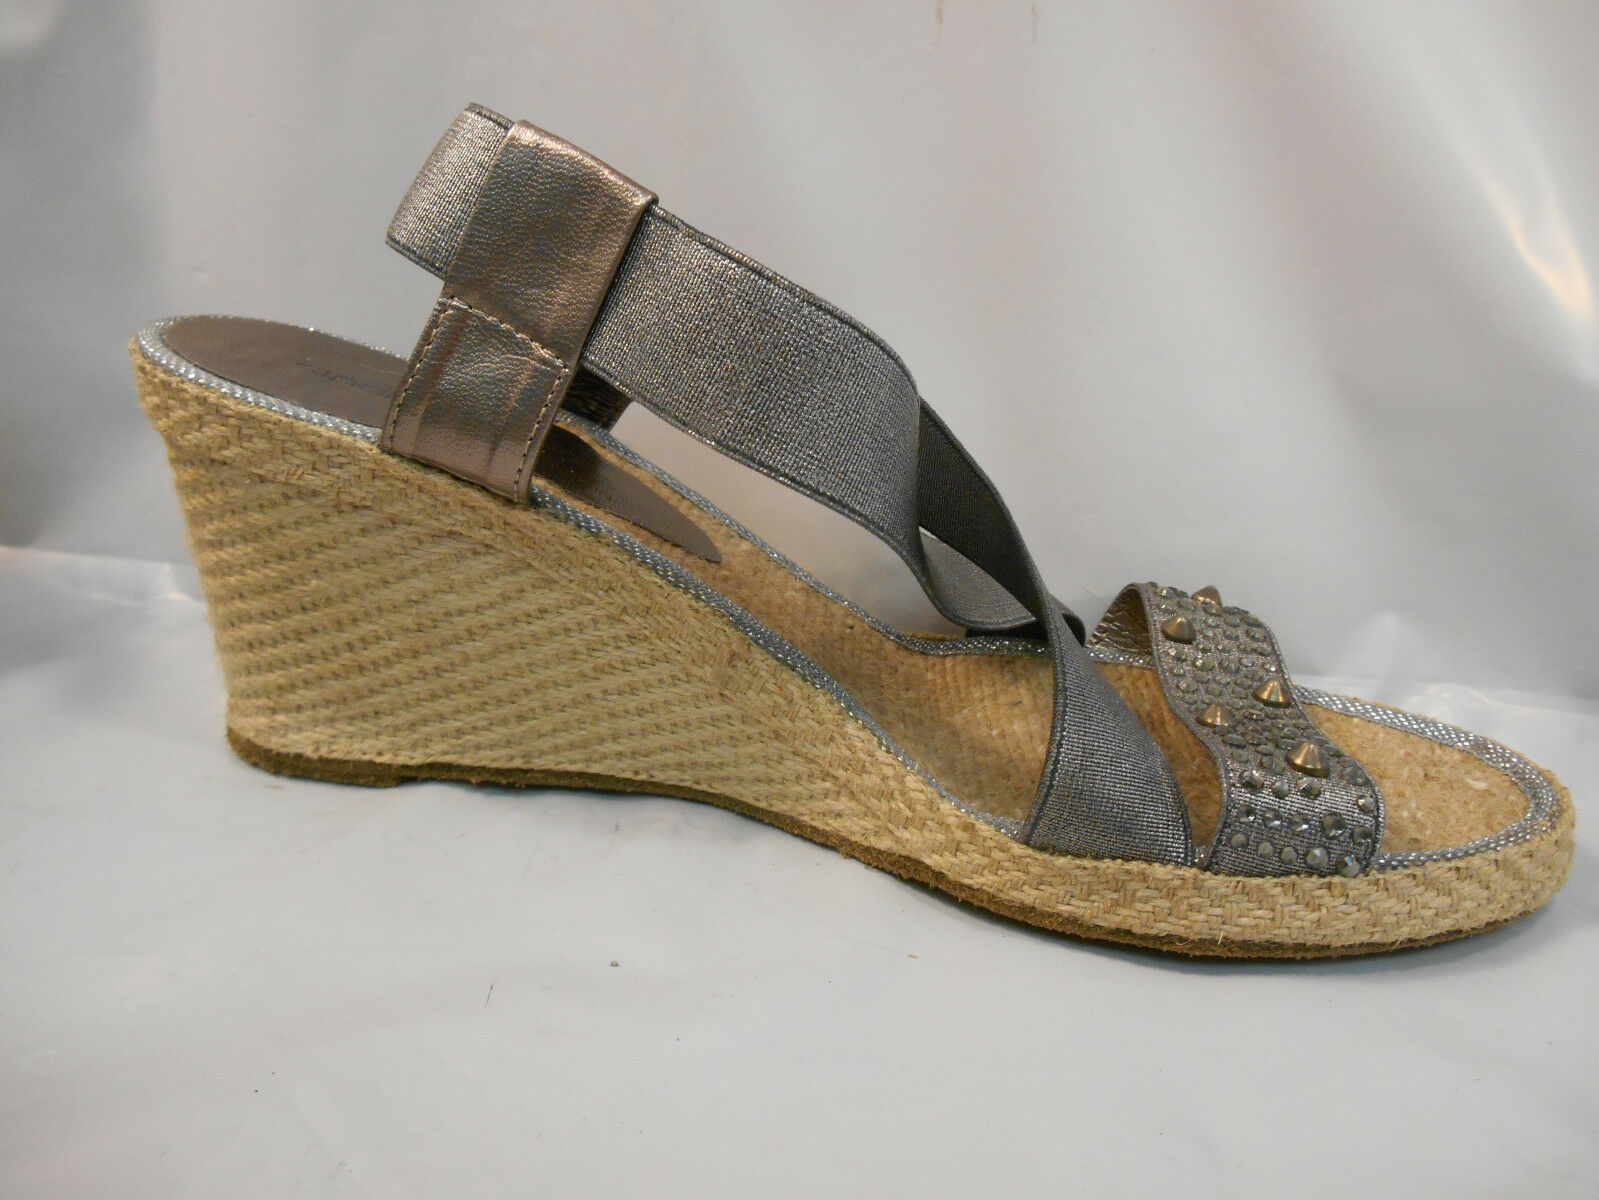 Andre Assous Pewter Silver Jewel Jewel Jewel Studded Espadrille Sandals Women's Size 9.5 M 7e7f35